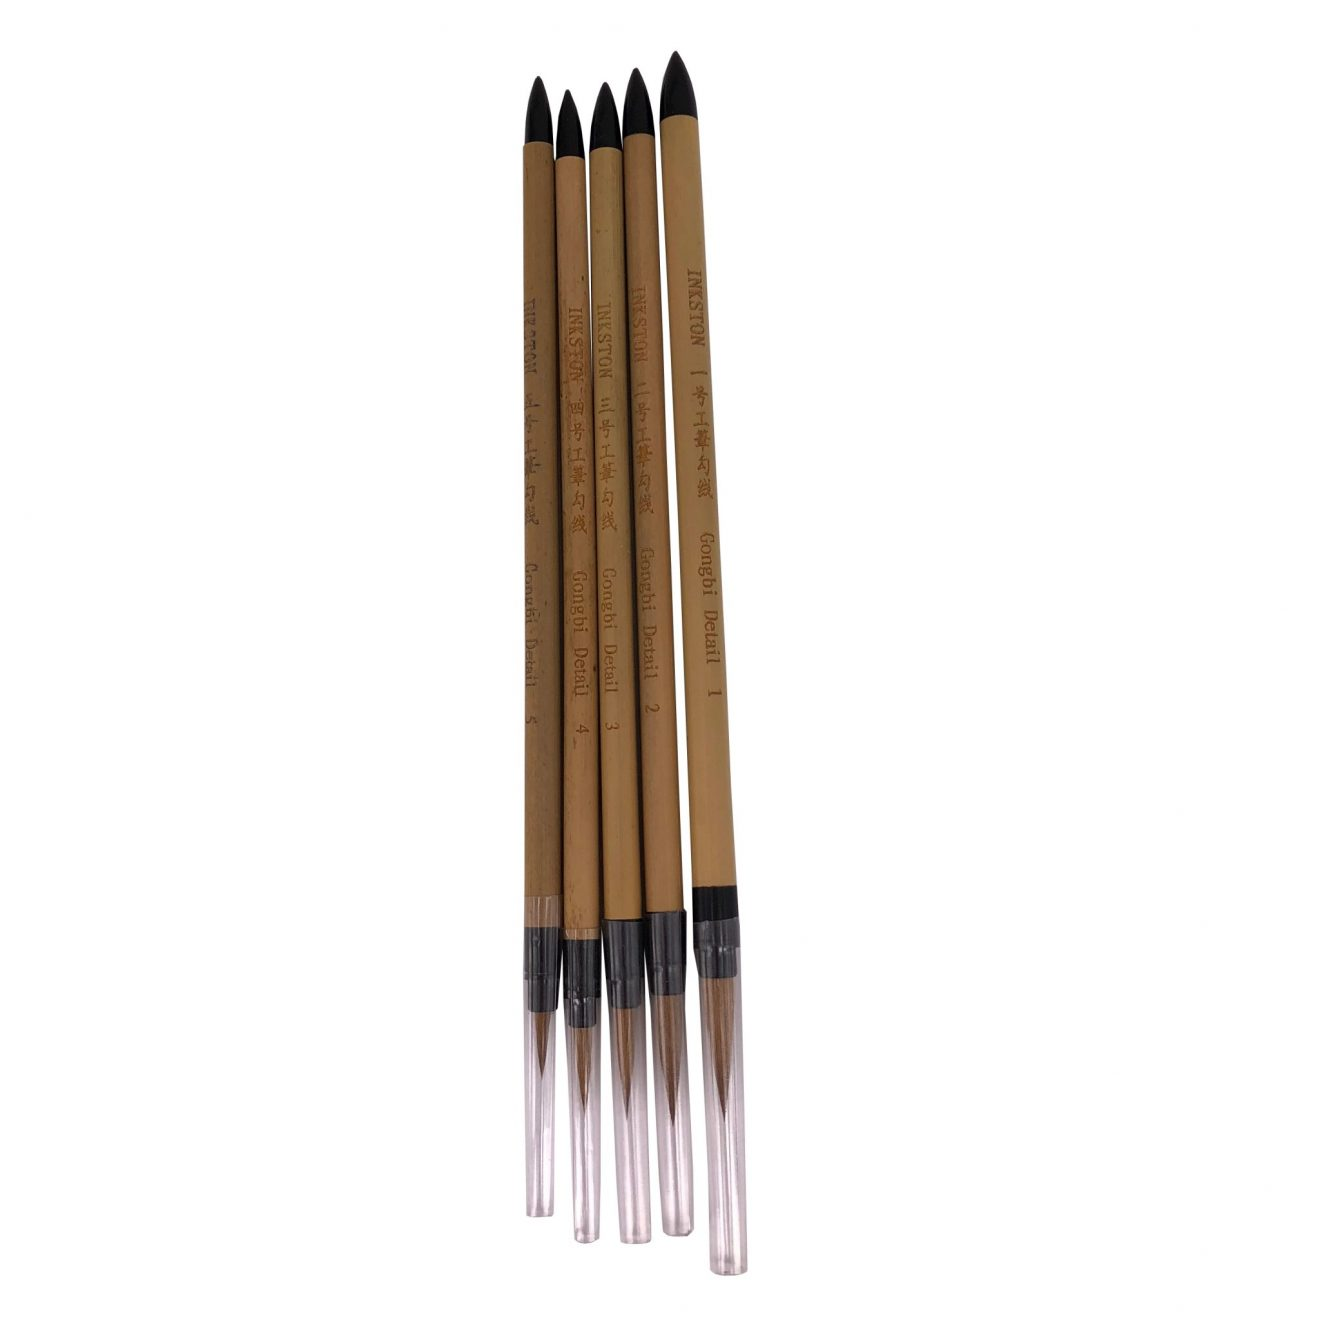 inkston gongbi detail brush set 1